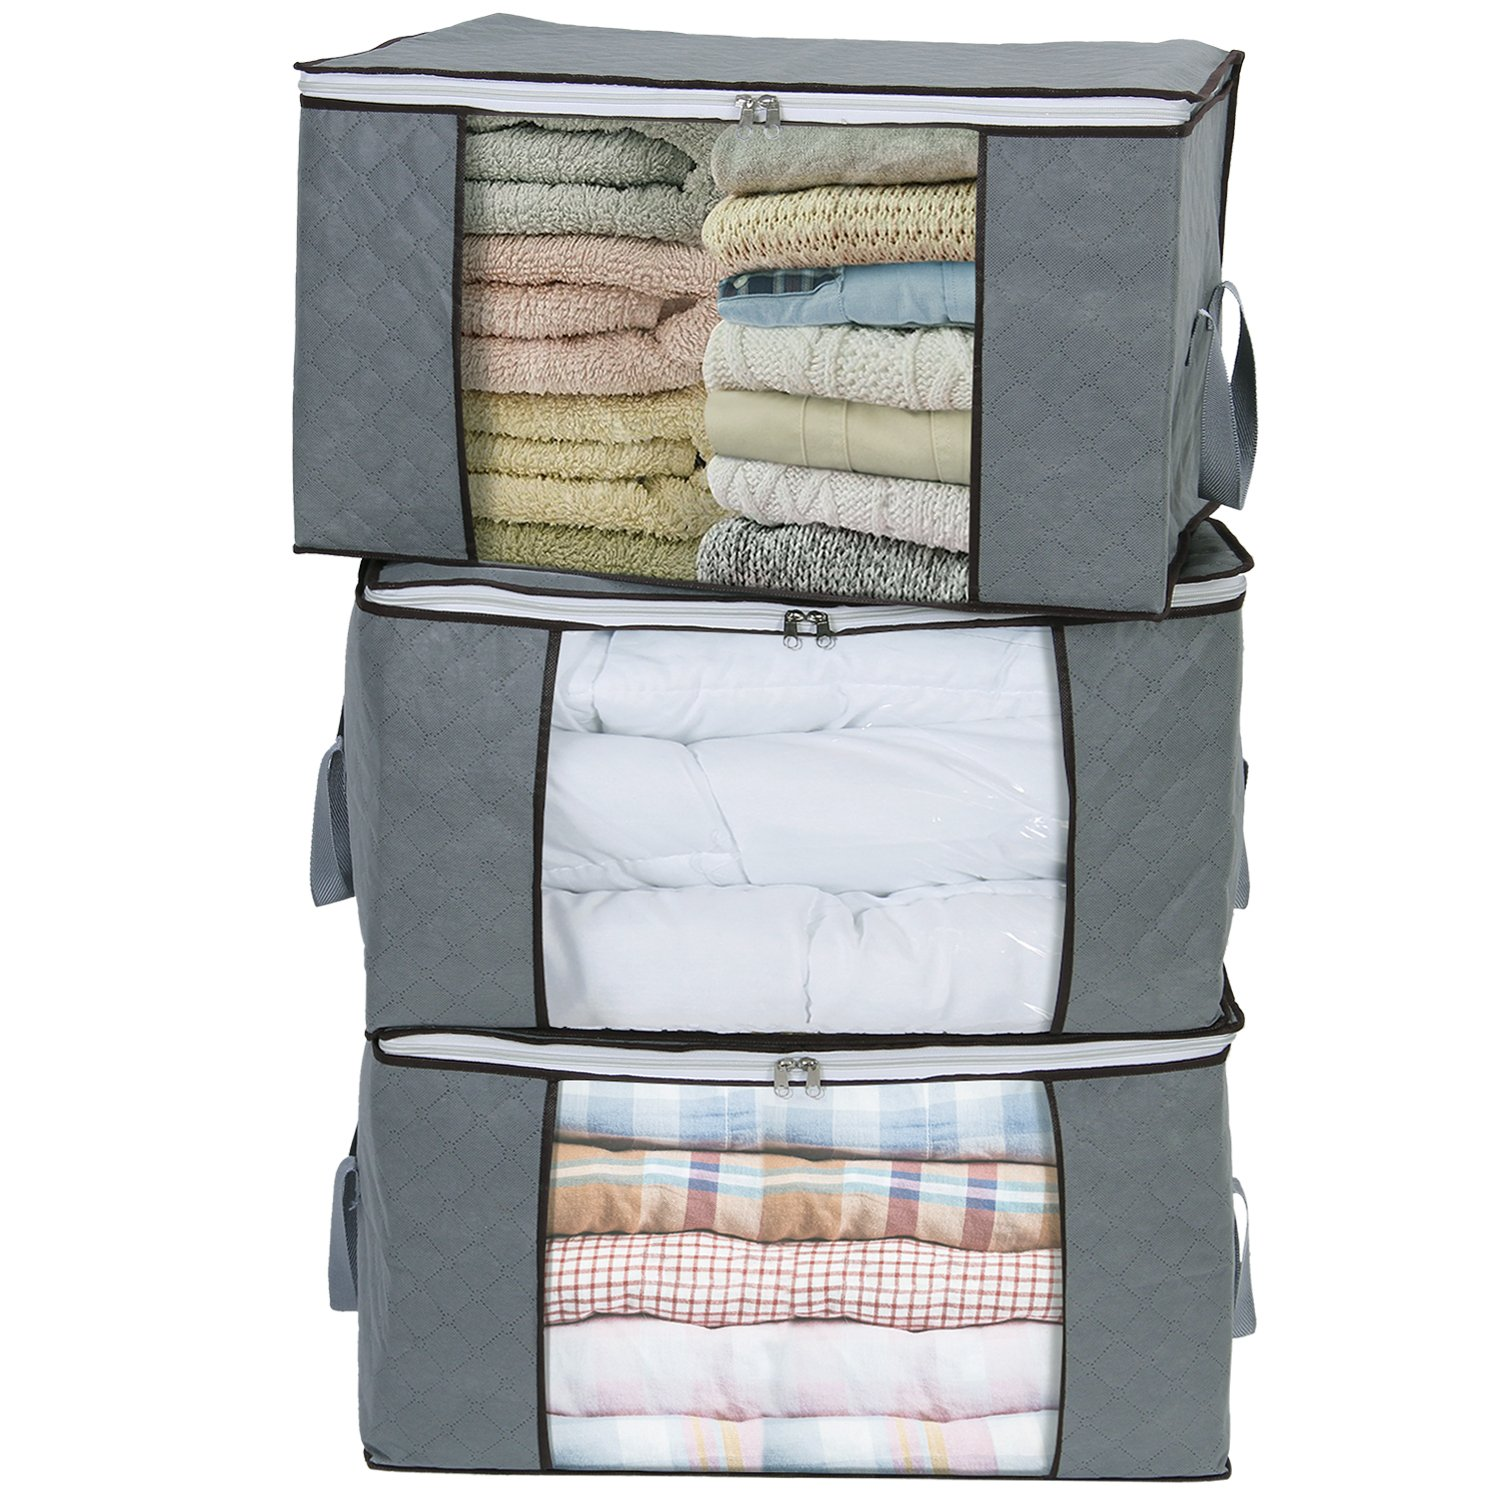 Lifewit Large Clothes Storage Bag for Comforters, Blankets, Bedding, Pillow, Breathable Foldable Closet Organizer with Clear Window, Set of 3 Grey